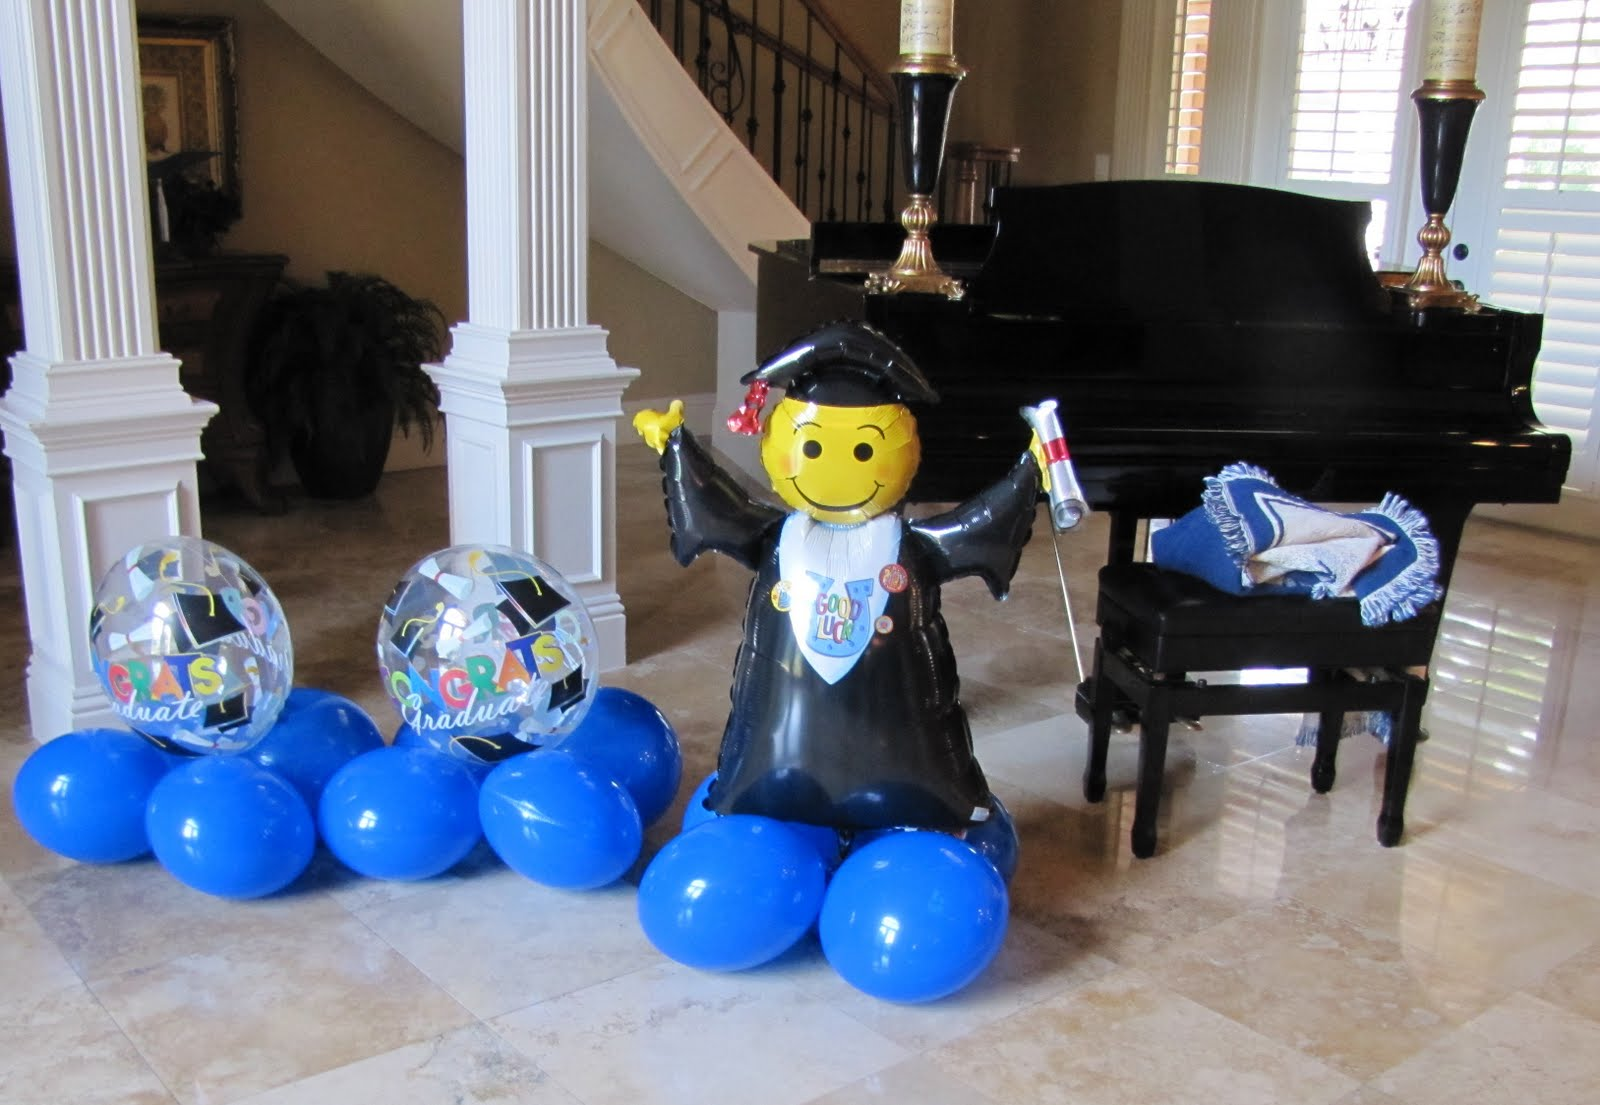 Party people event decorating company july 2011 for Balloon decoration ideas for graduation